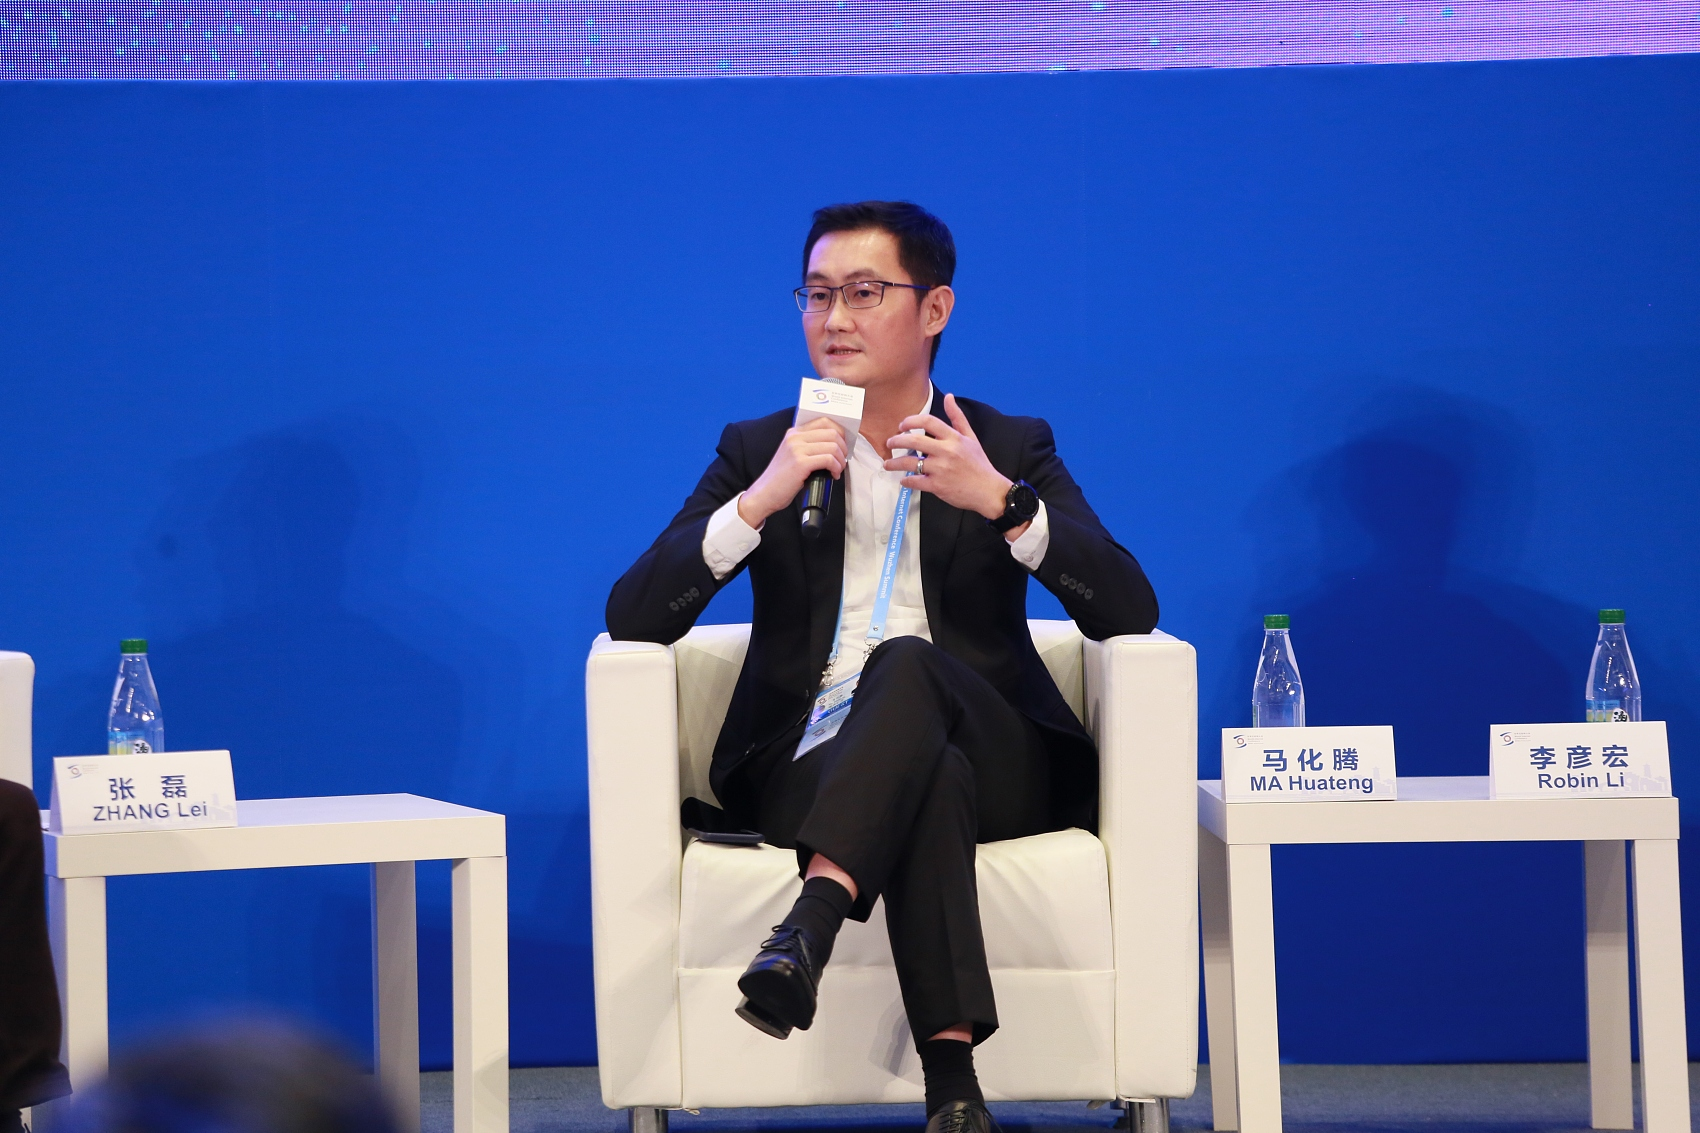 To connect everything: Tencent's Pony Ma